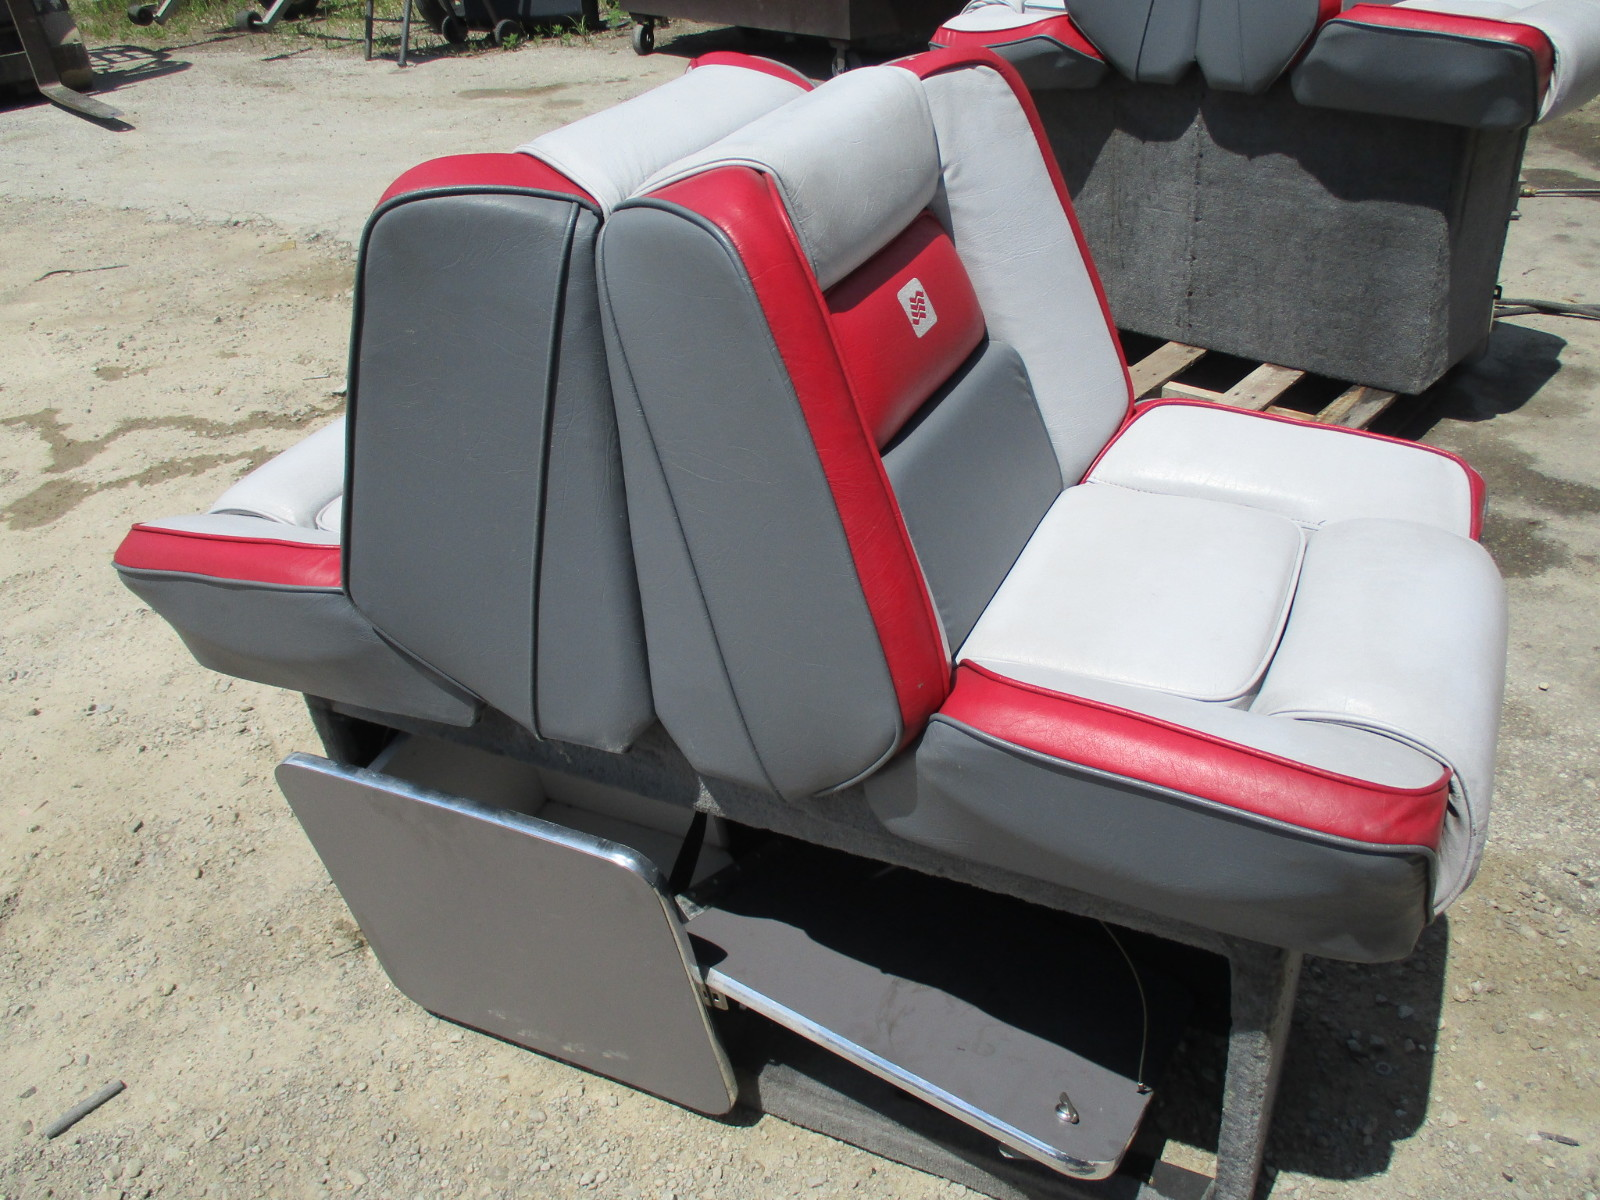 1988 Bayliner Capri Seat Covers